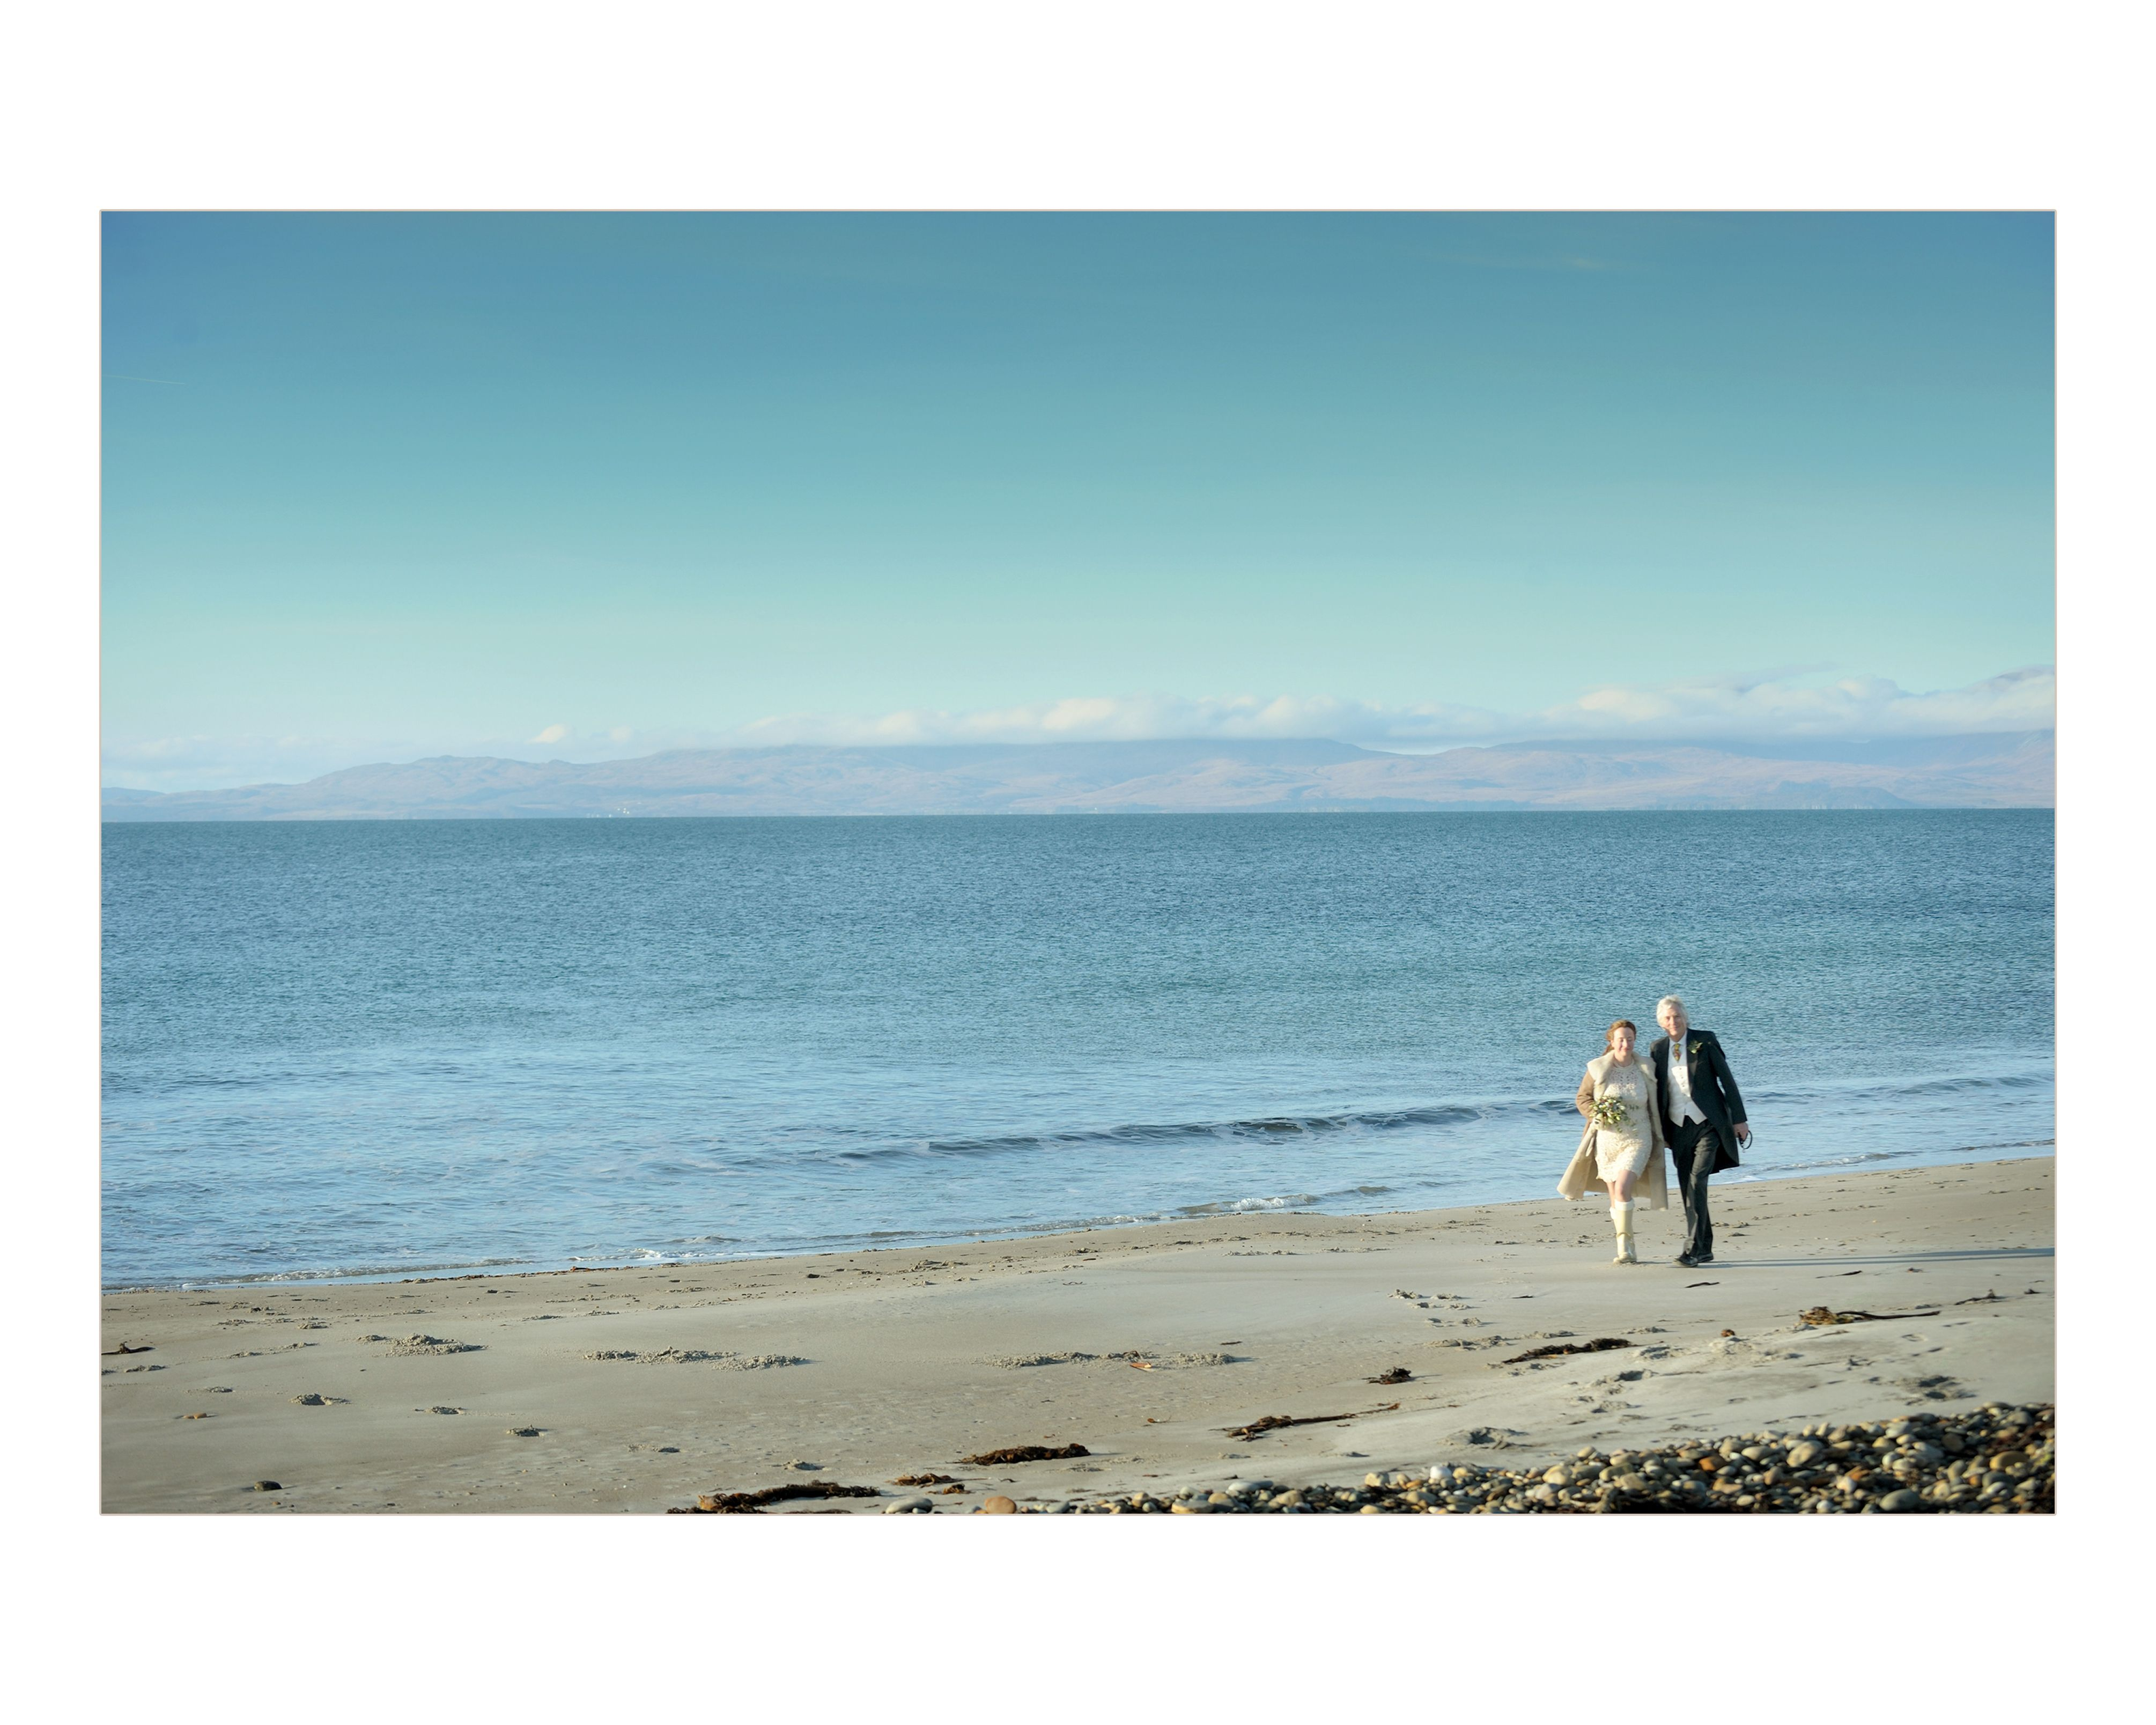 Exclusive Use Scottish Coastal Wedding Venue We Offer Affordable Packages For Up To 100 Guests